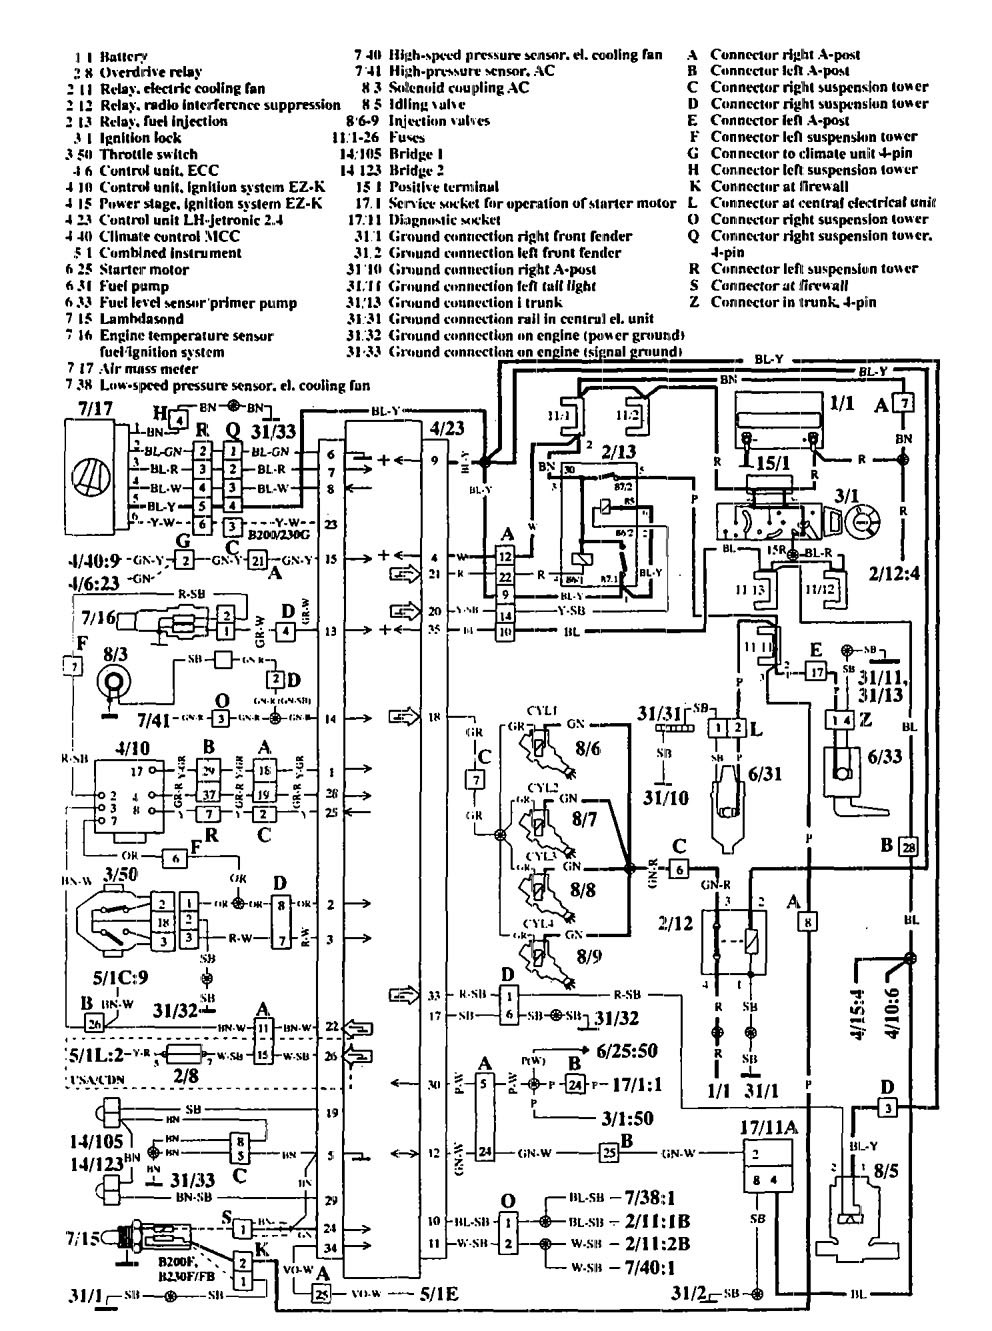 2006 honda accord wiring diagram 2000 chevy blazer stereo volvo 940 (1992) - diagrams fuel controls carknowledge